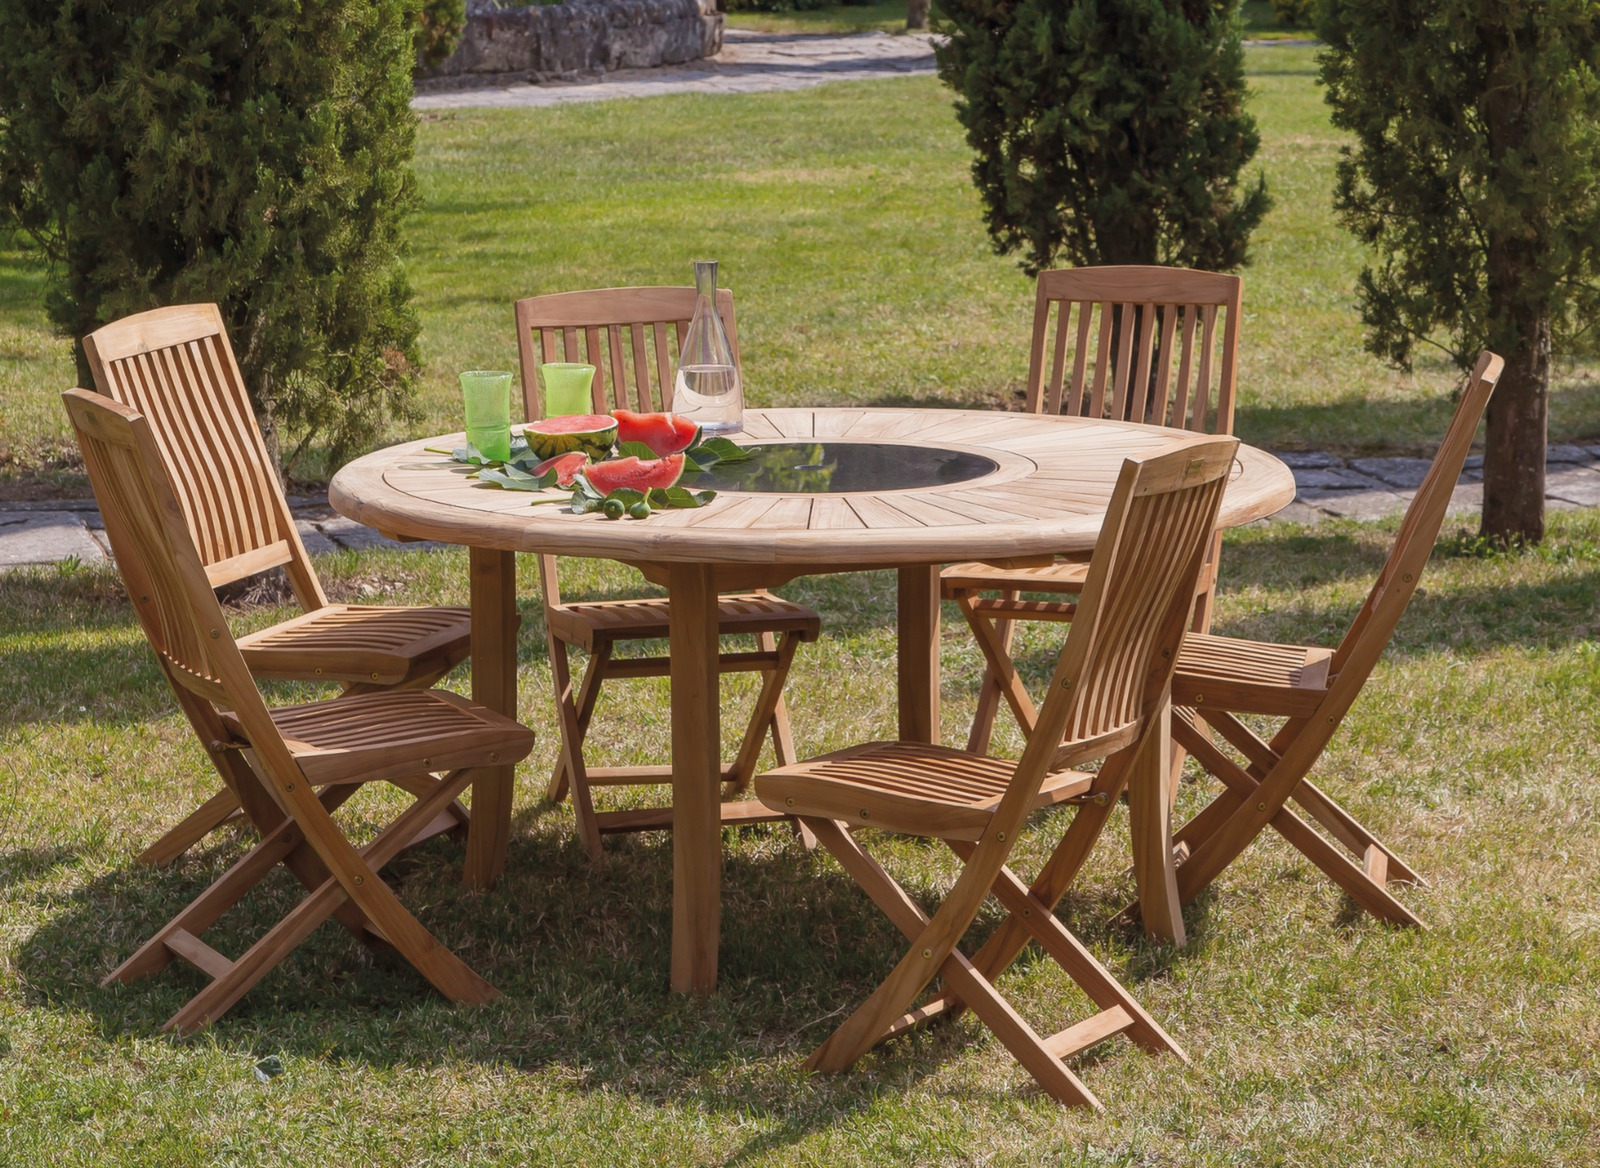 Table De Jardin Ronde En Teck Brehat 155cm Proloisirs: table salon de jardin ronde